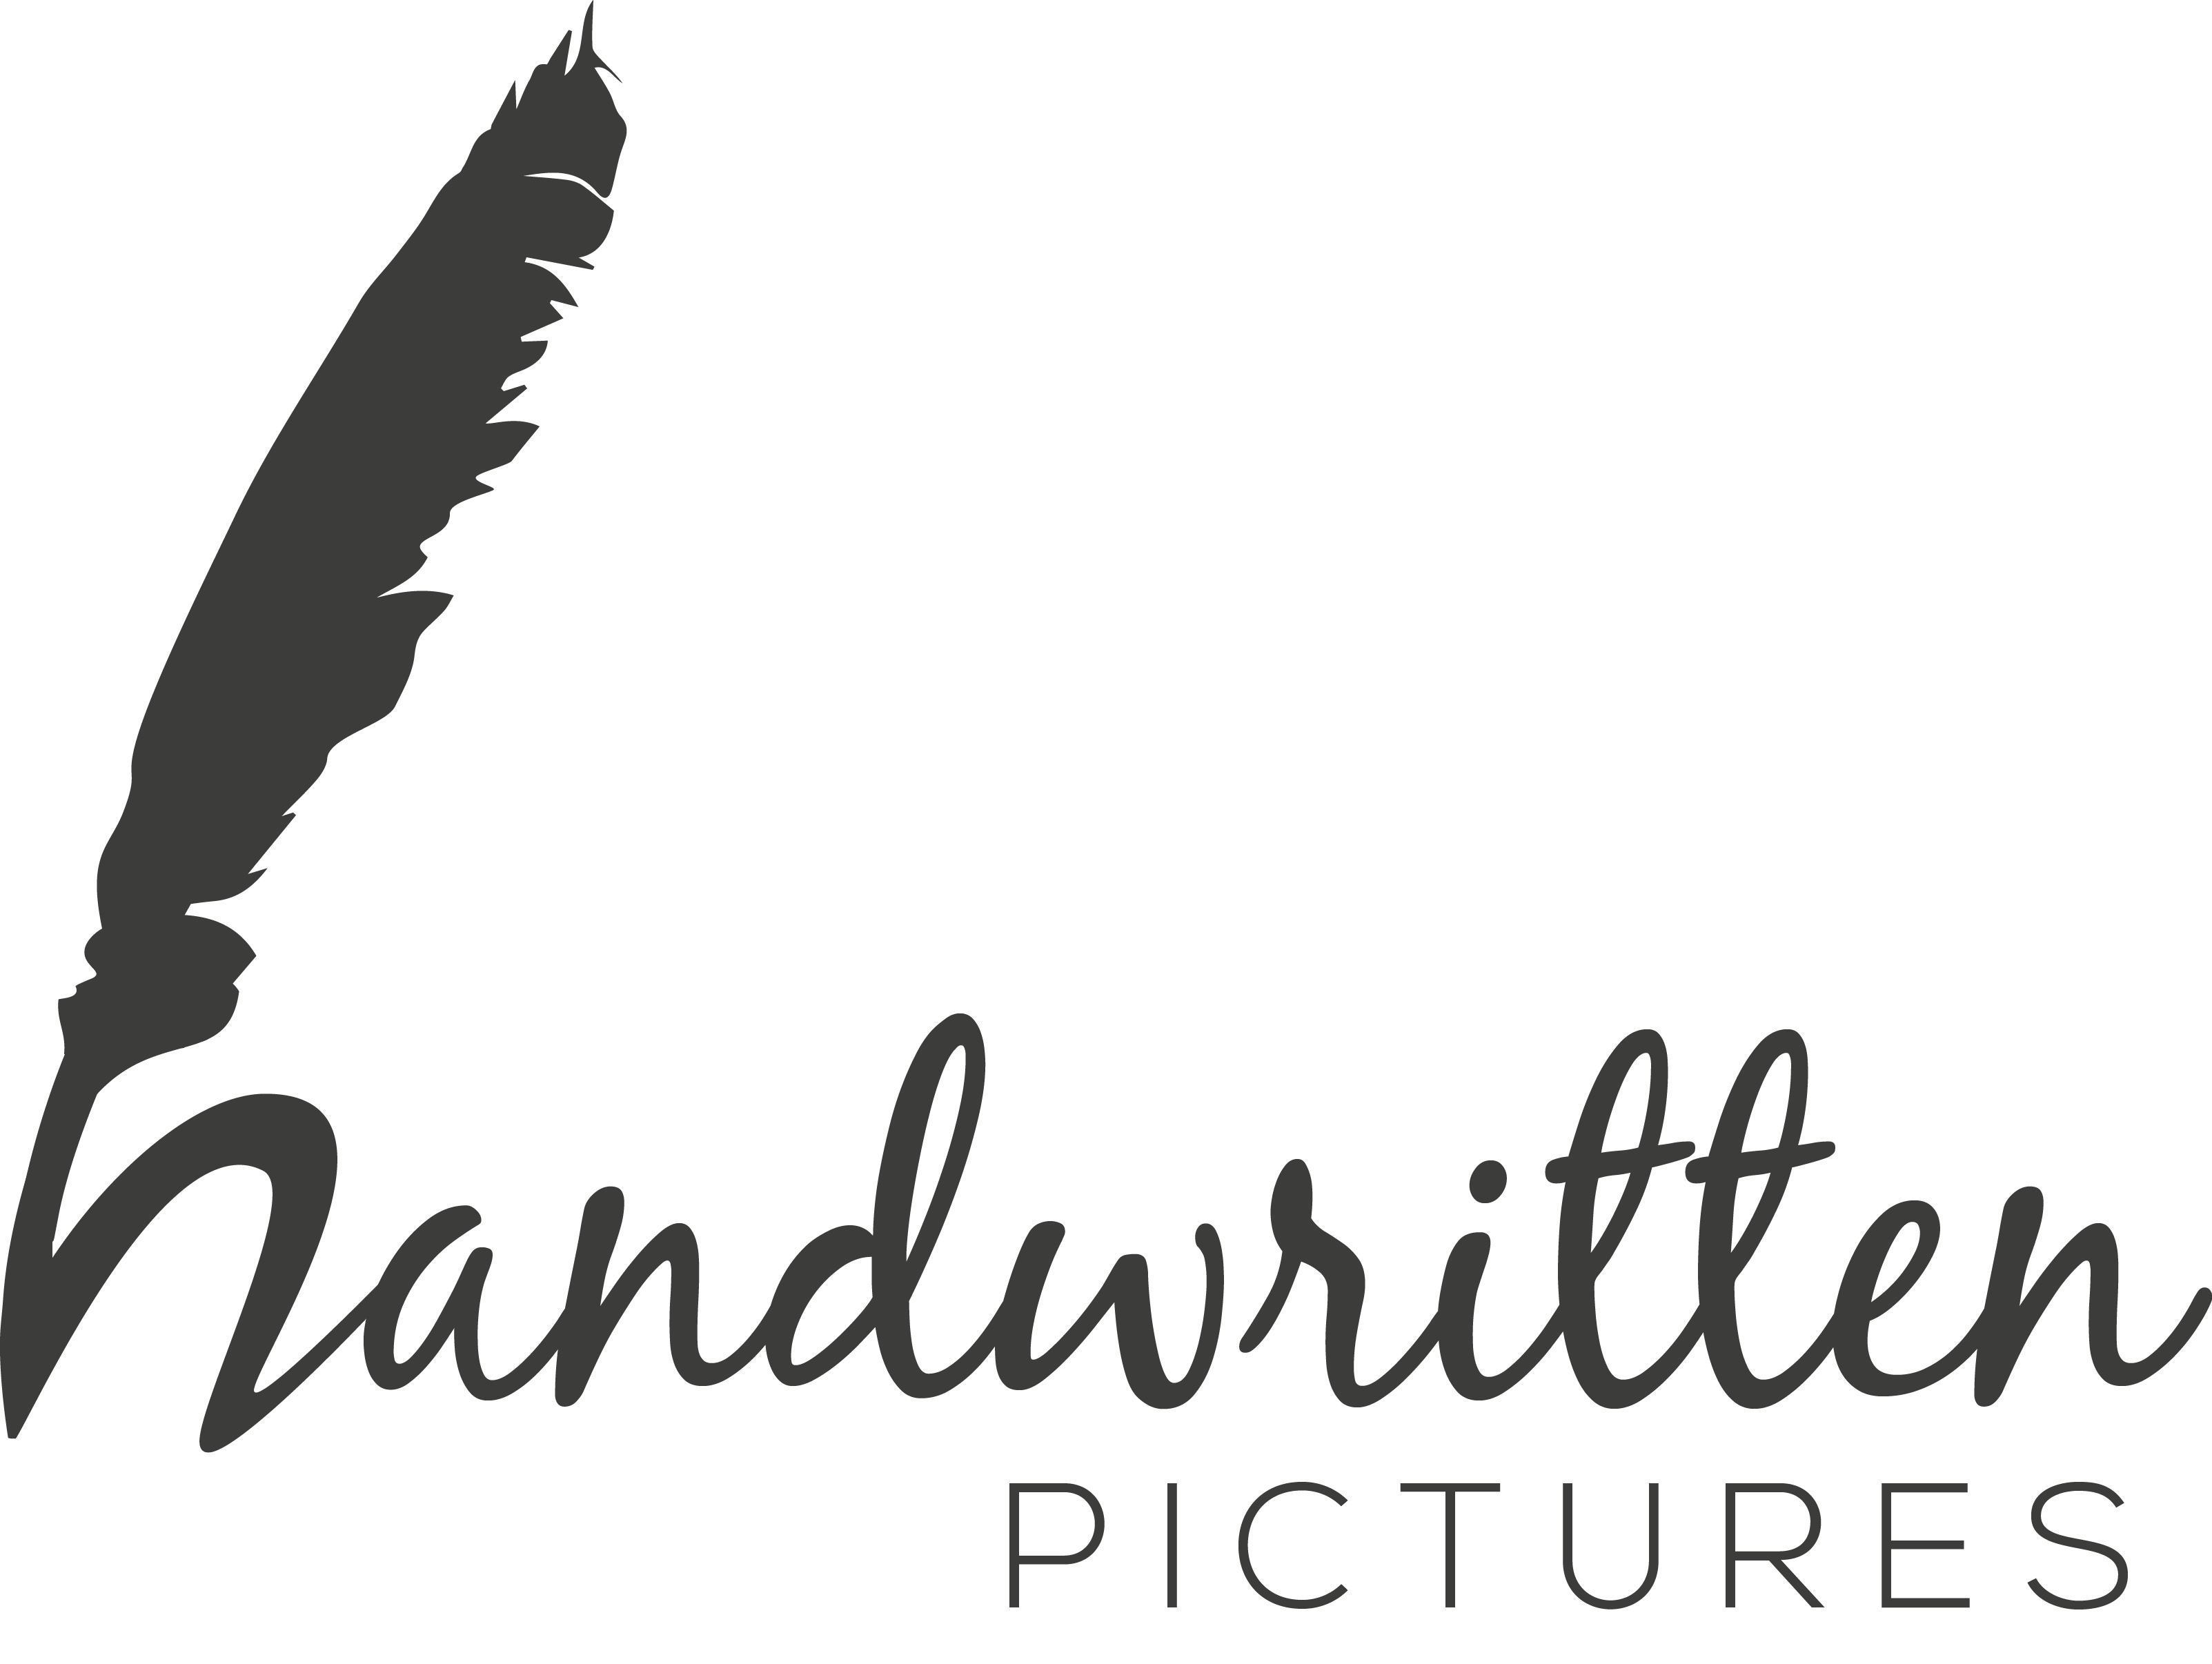 handwritten Pictures GmbH